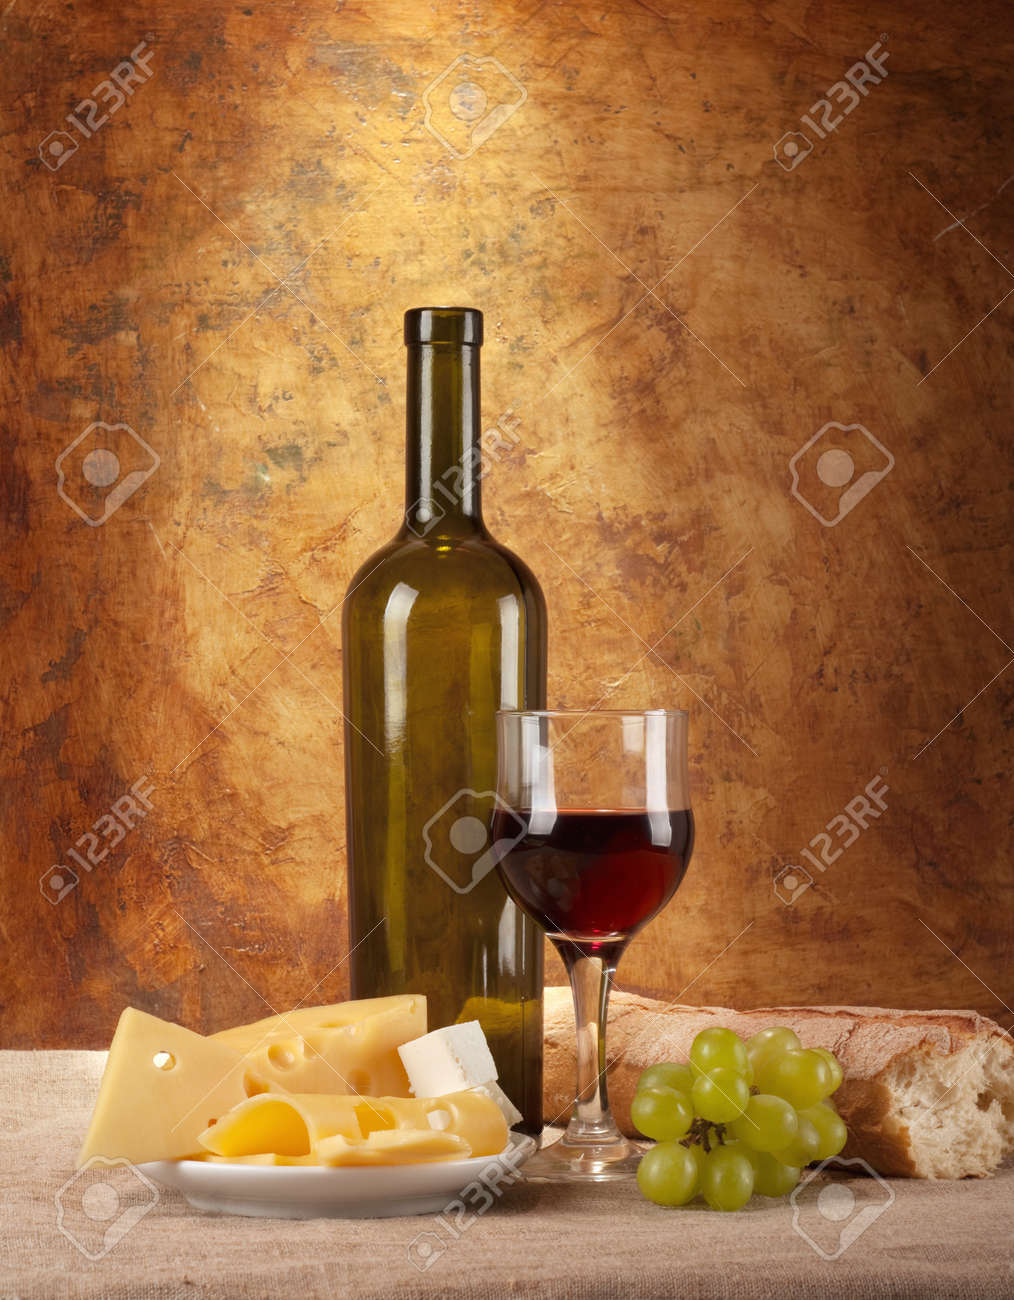 Red wine, assorted cheeses, bread and grapes in a still life setup. Stock Photo - 9767802